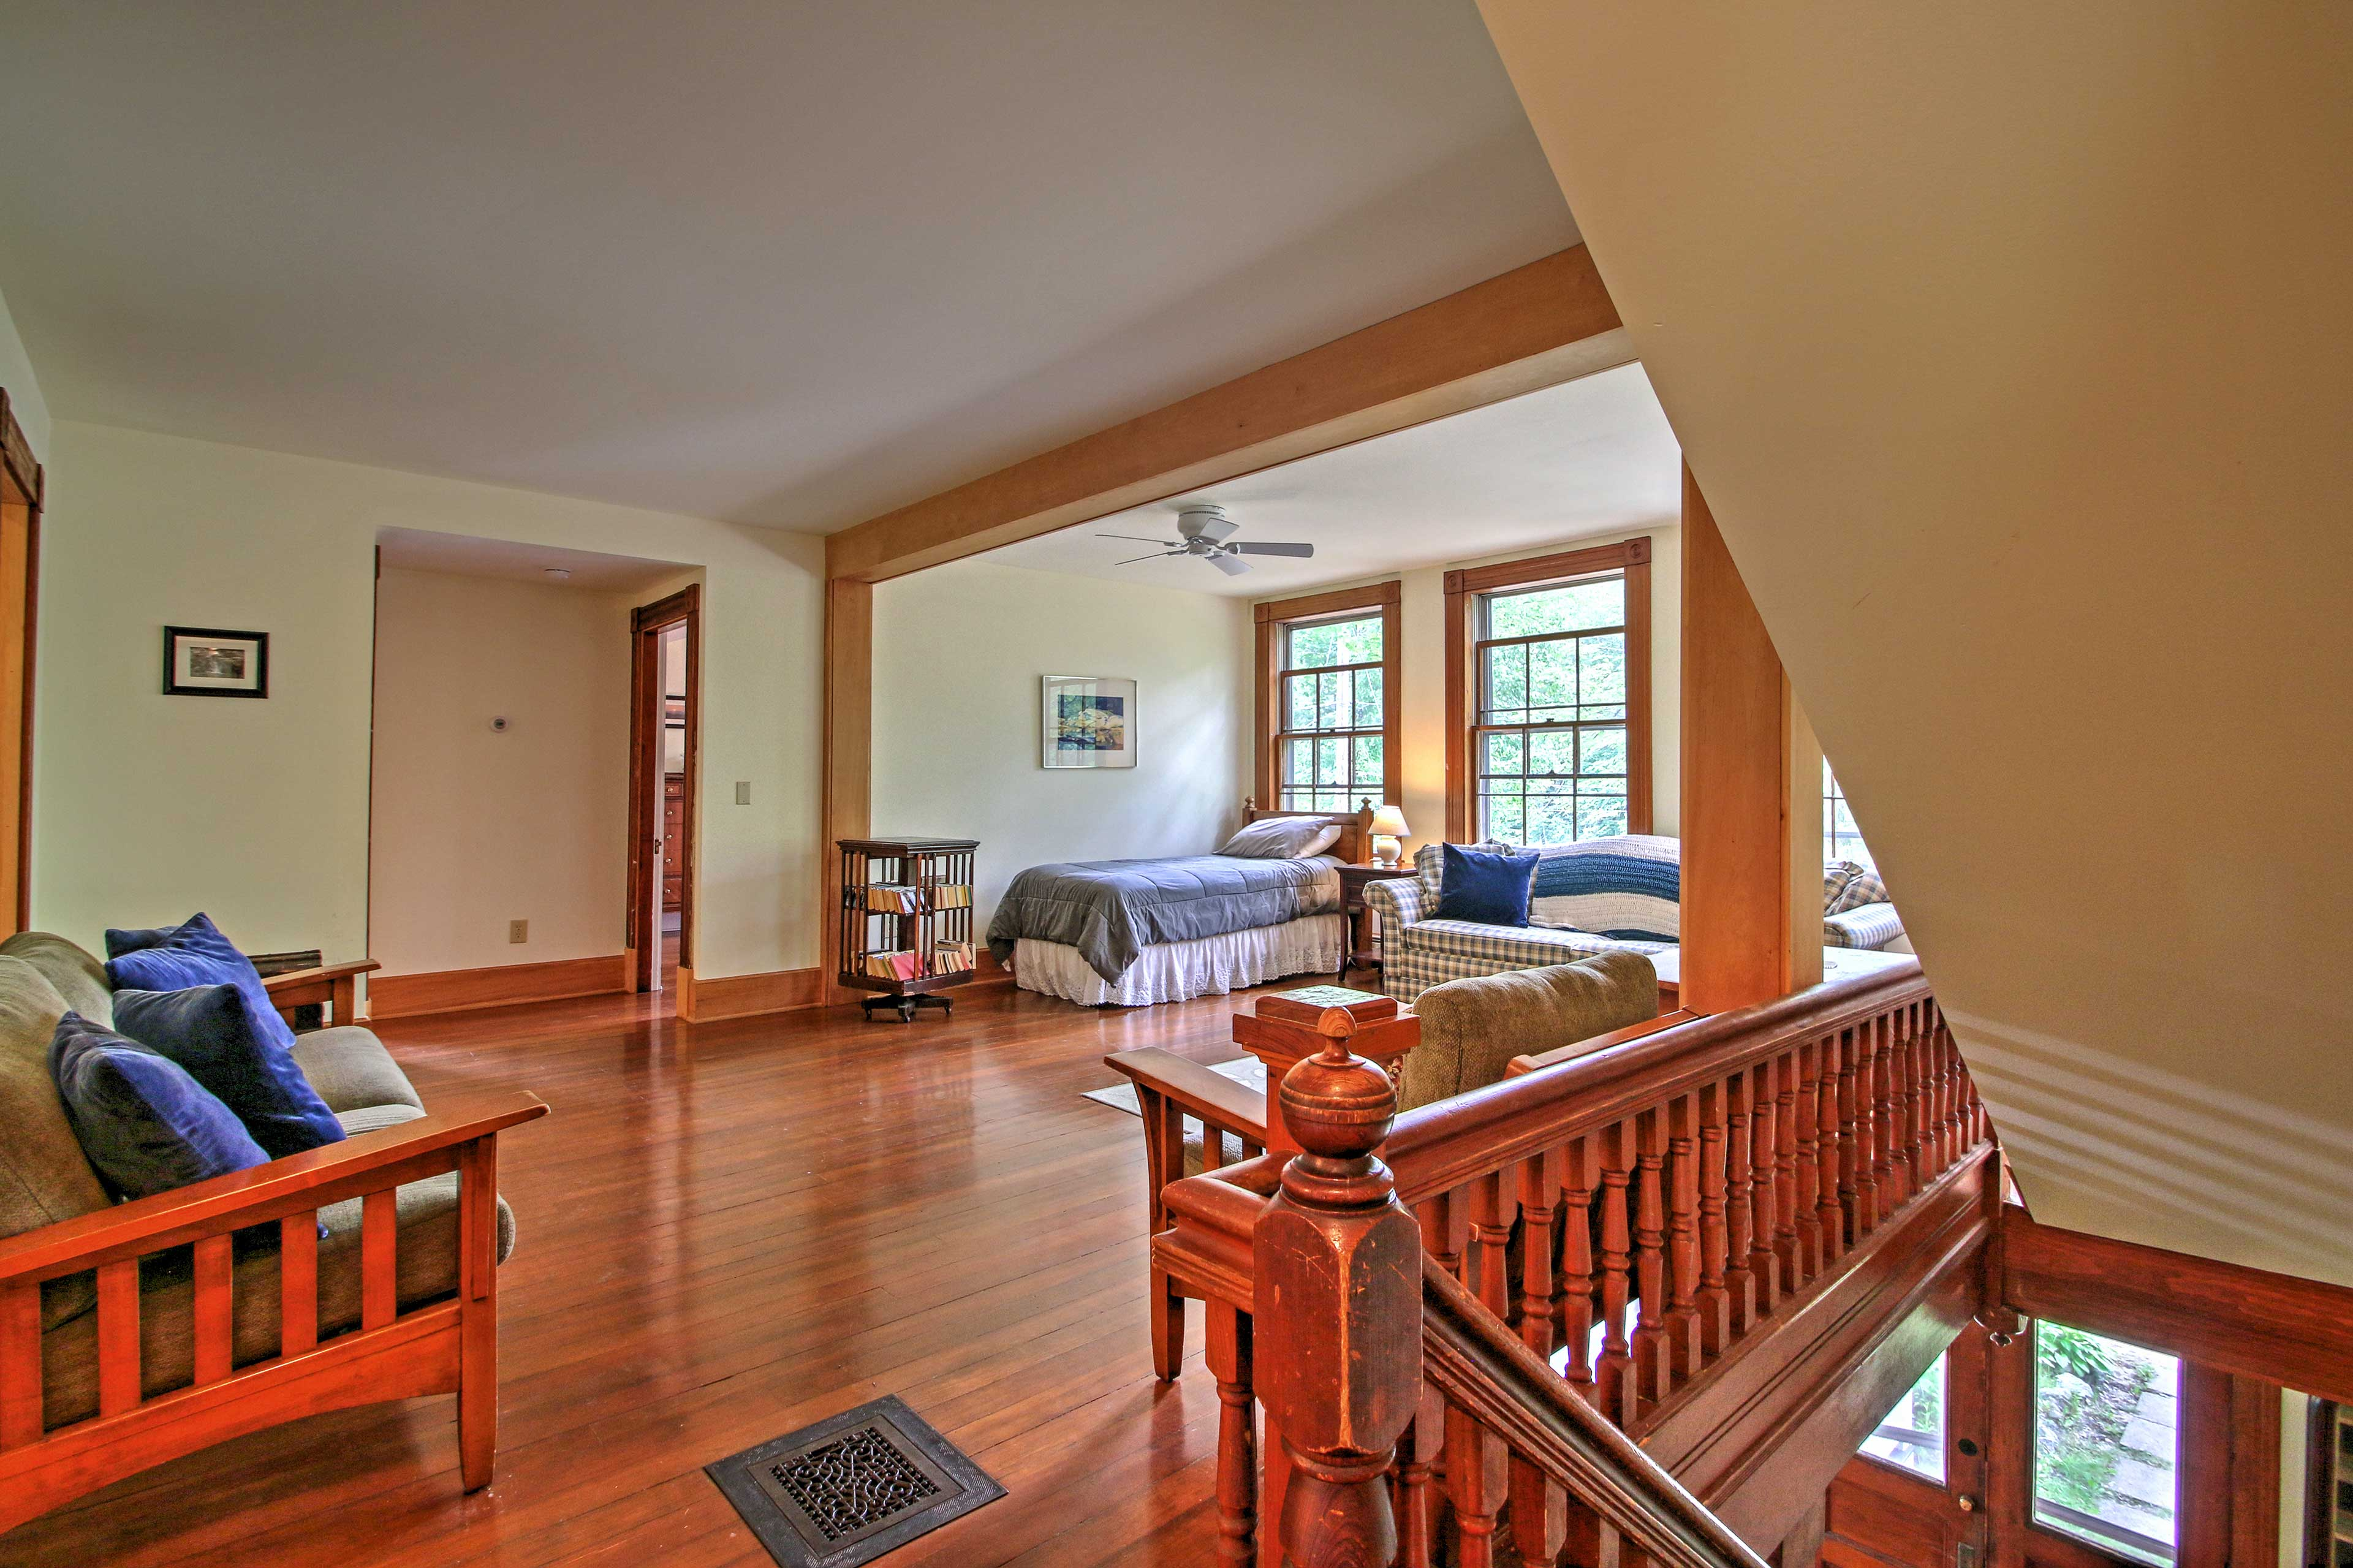 On the second floor is a wide open room with a futon, sofa, and twin bed.